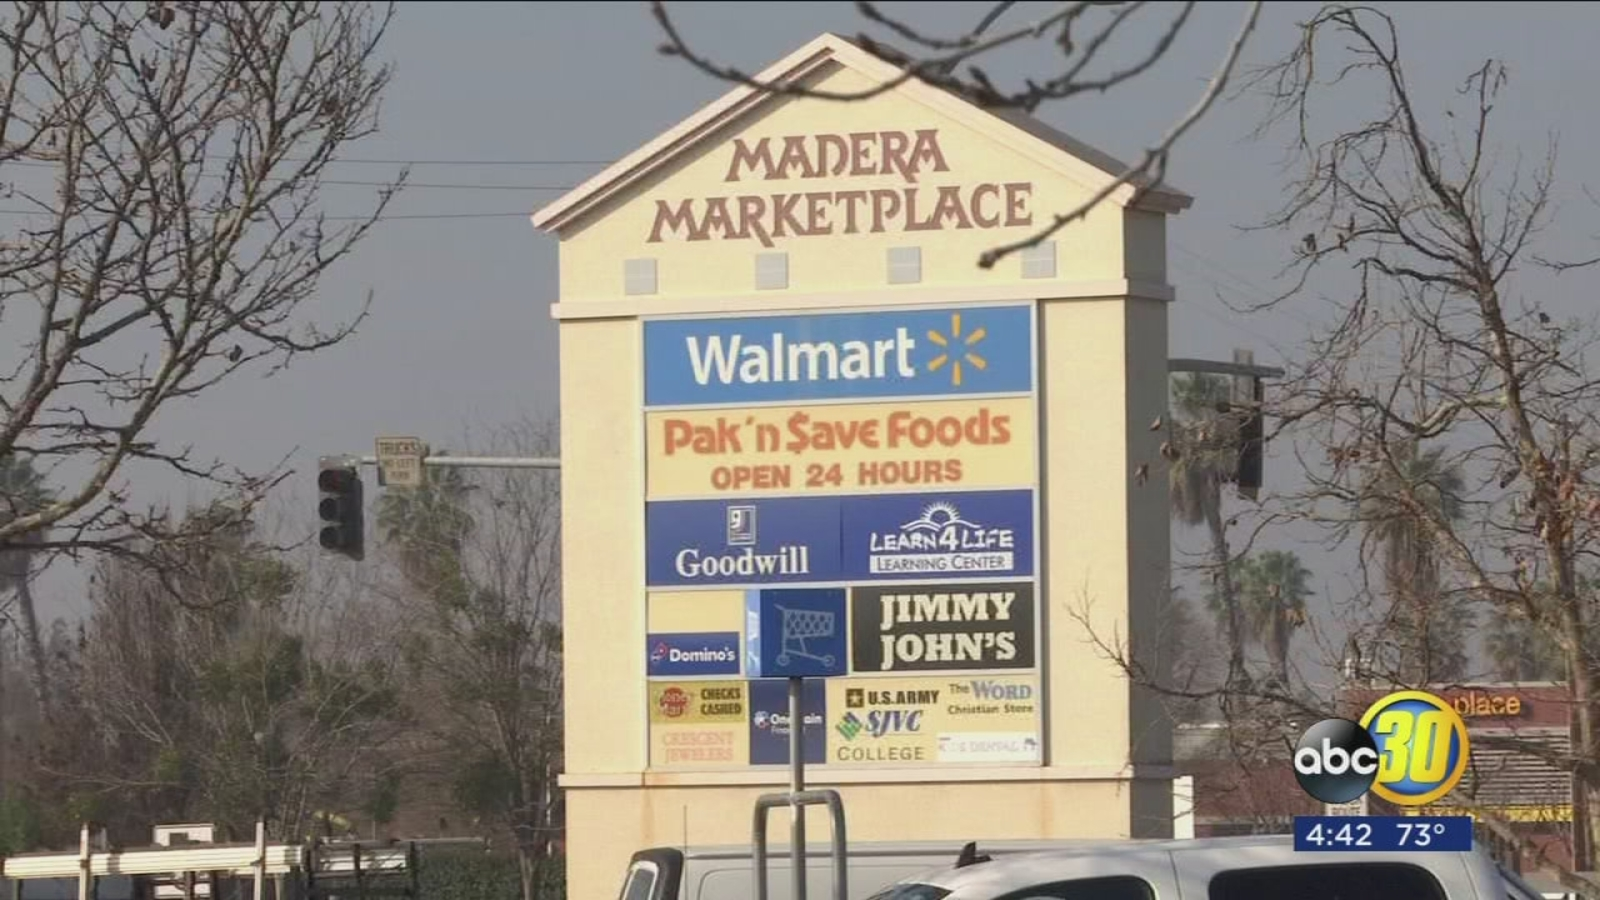 Madera Walmart Announces New Dunkin Donuts Location